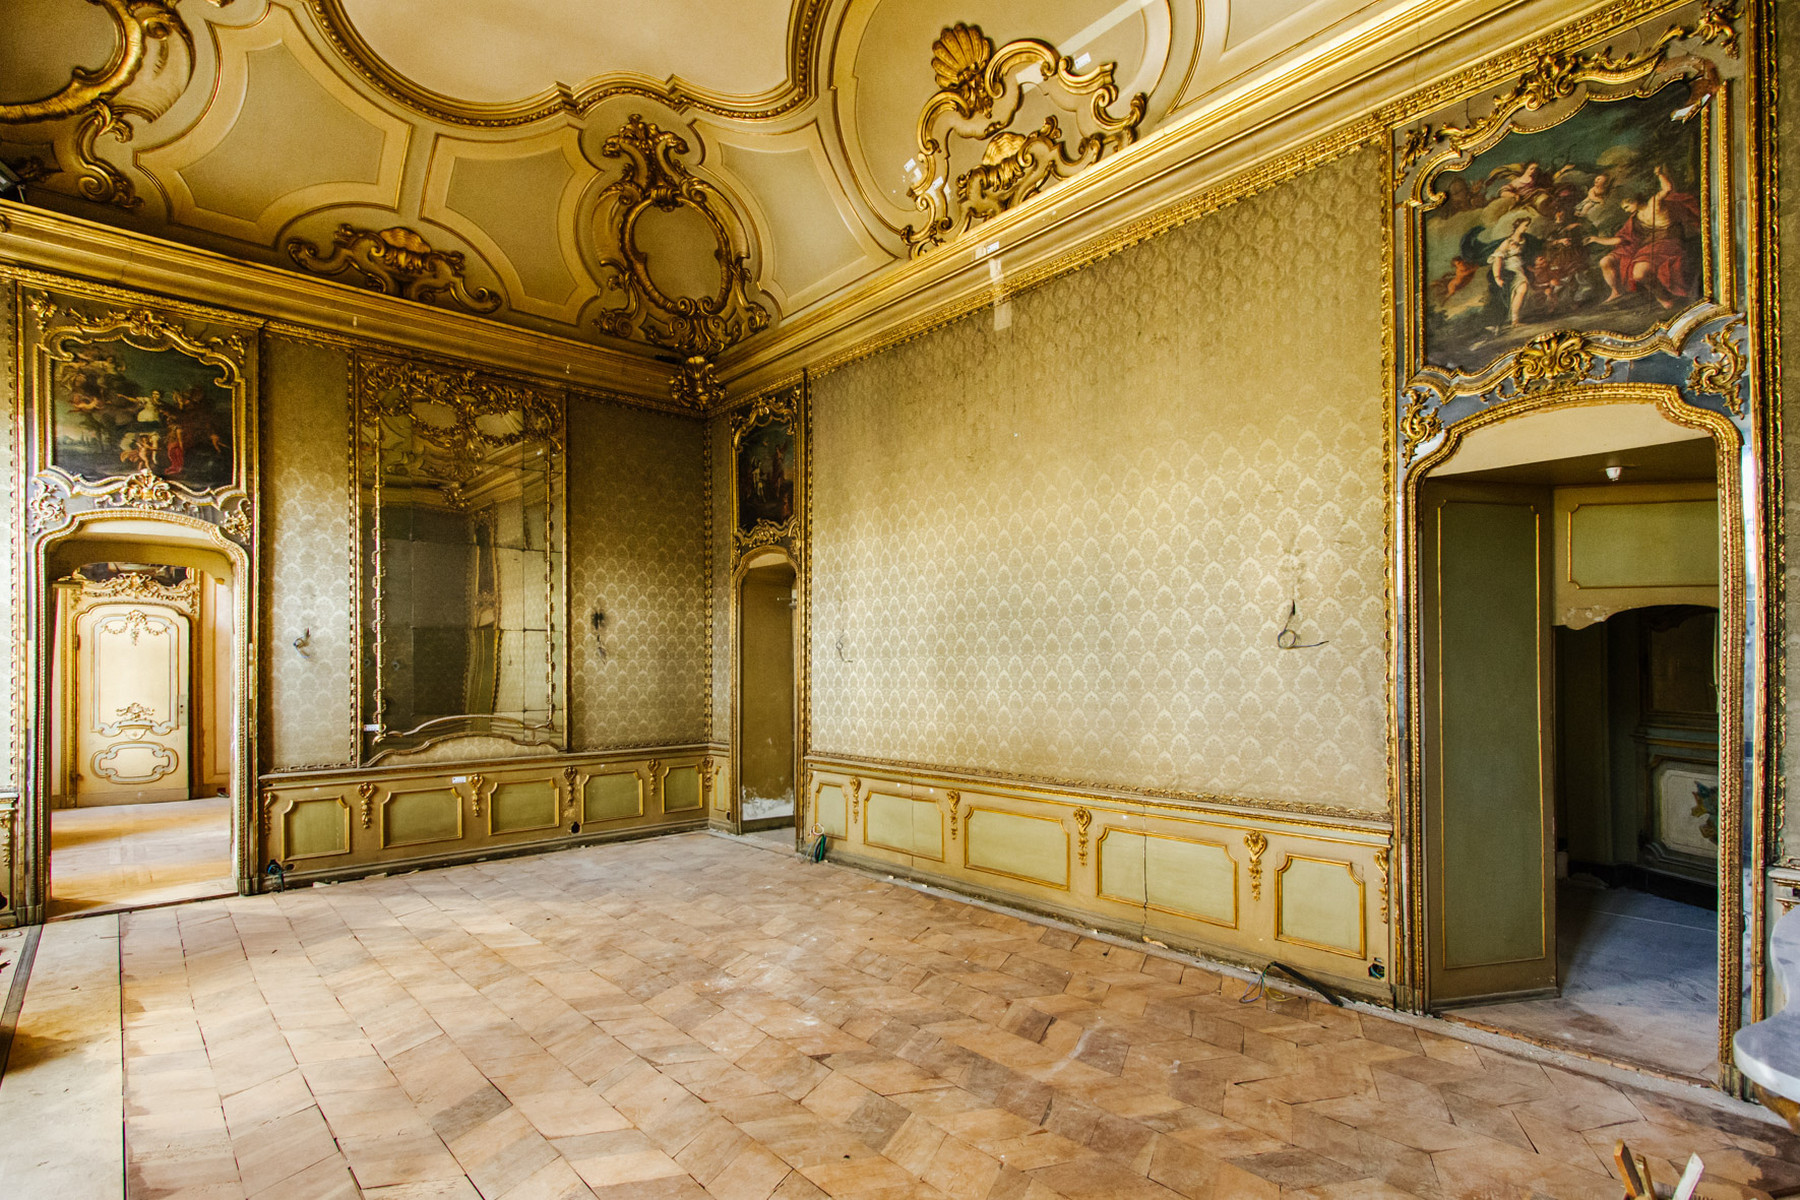 Apartment for Sale at Splendid Baroque architecture apartment in historic center Piazza Savoia Torino, 10122 Italy